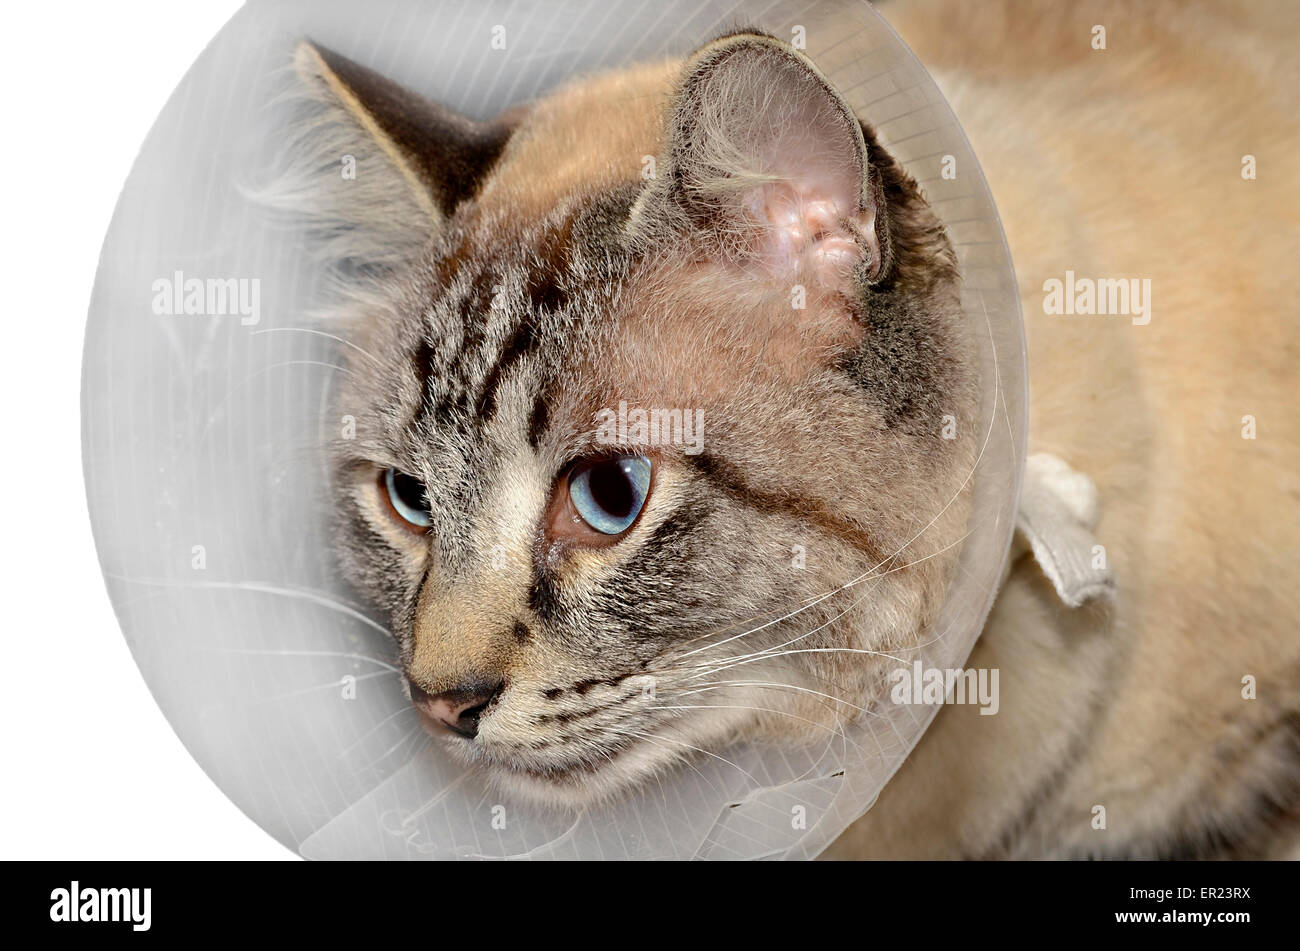 Siamese Balinese mixed breed cat wearing a cone after surgery. - Stock Image